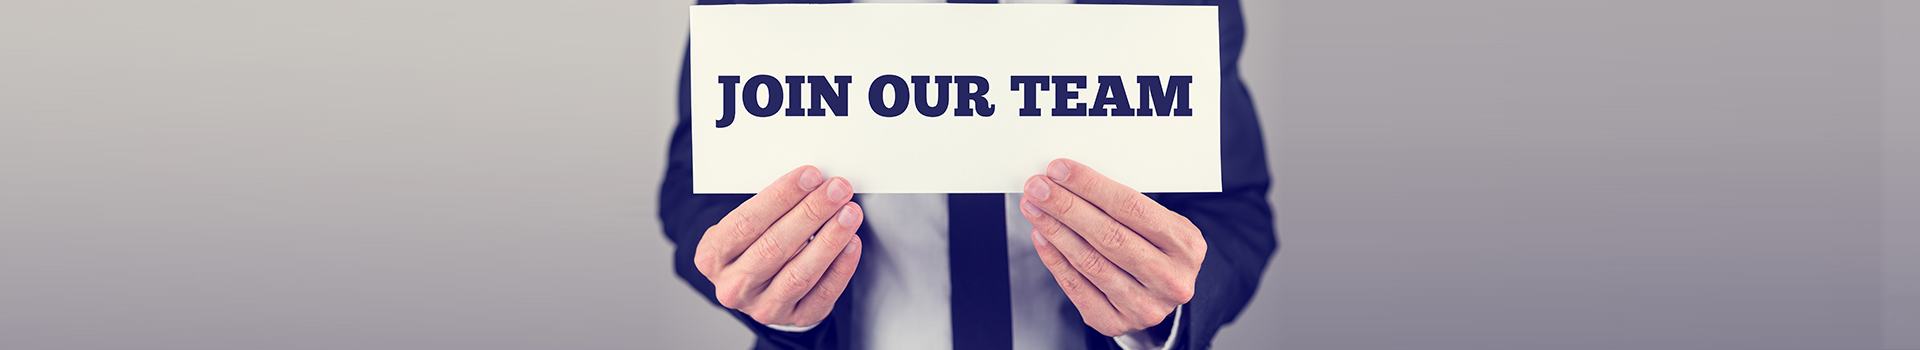 Join Our Team - Looking For Full Time Agents with a desire to be a business broker